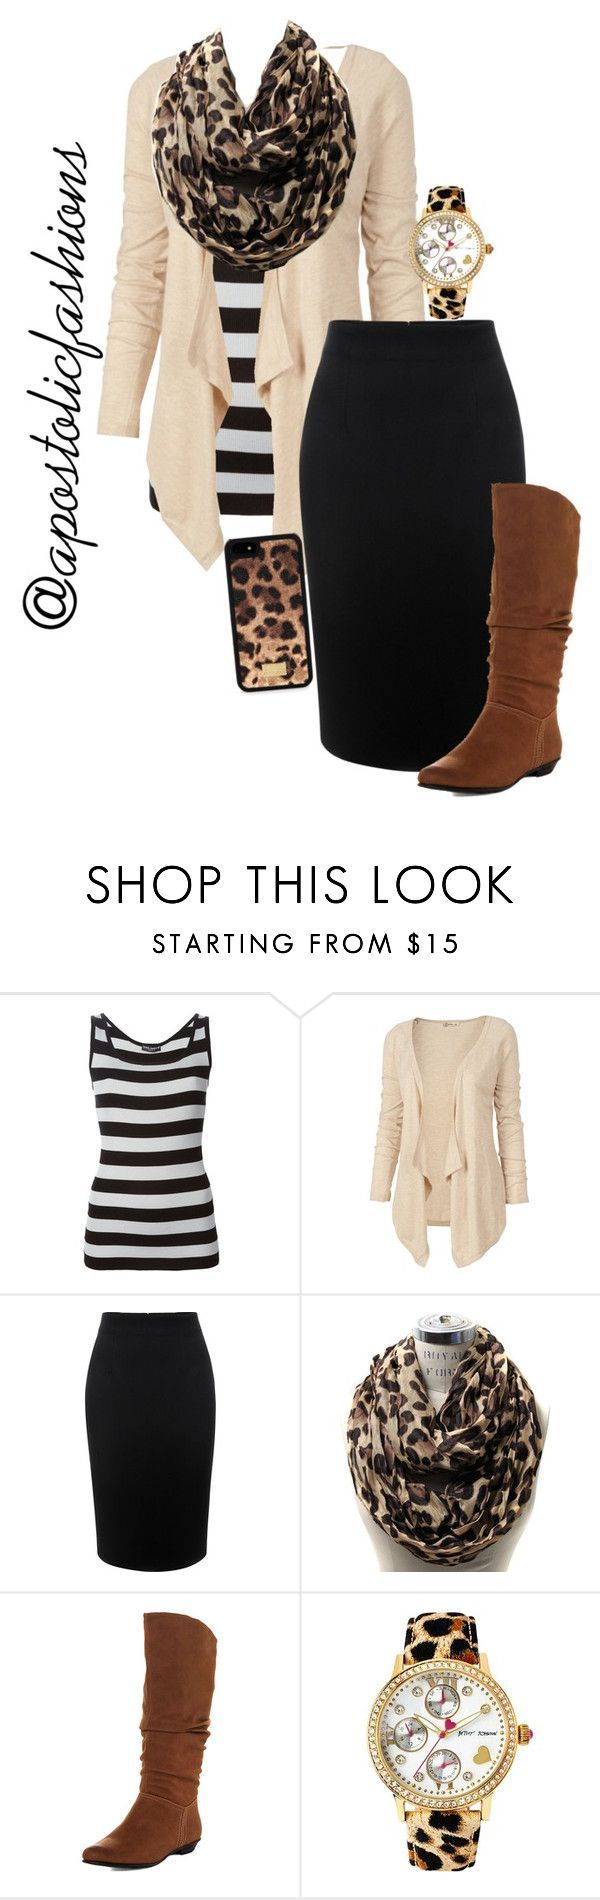 """""""Apostolic Fashions #1355"""" by apostolicfashions on Polyvore featuring Dolce&Gabbana, Fat Face, Alexander McQueen, Dorothy Perkins and Betsey Johnson"""